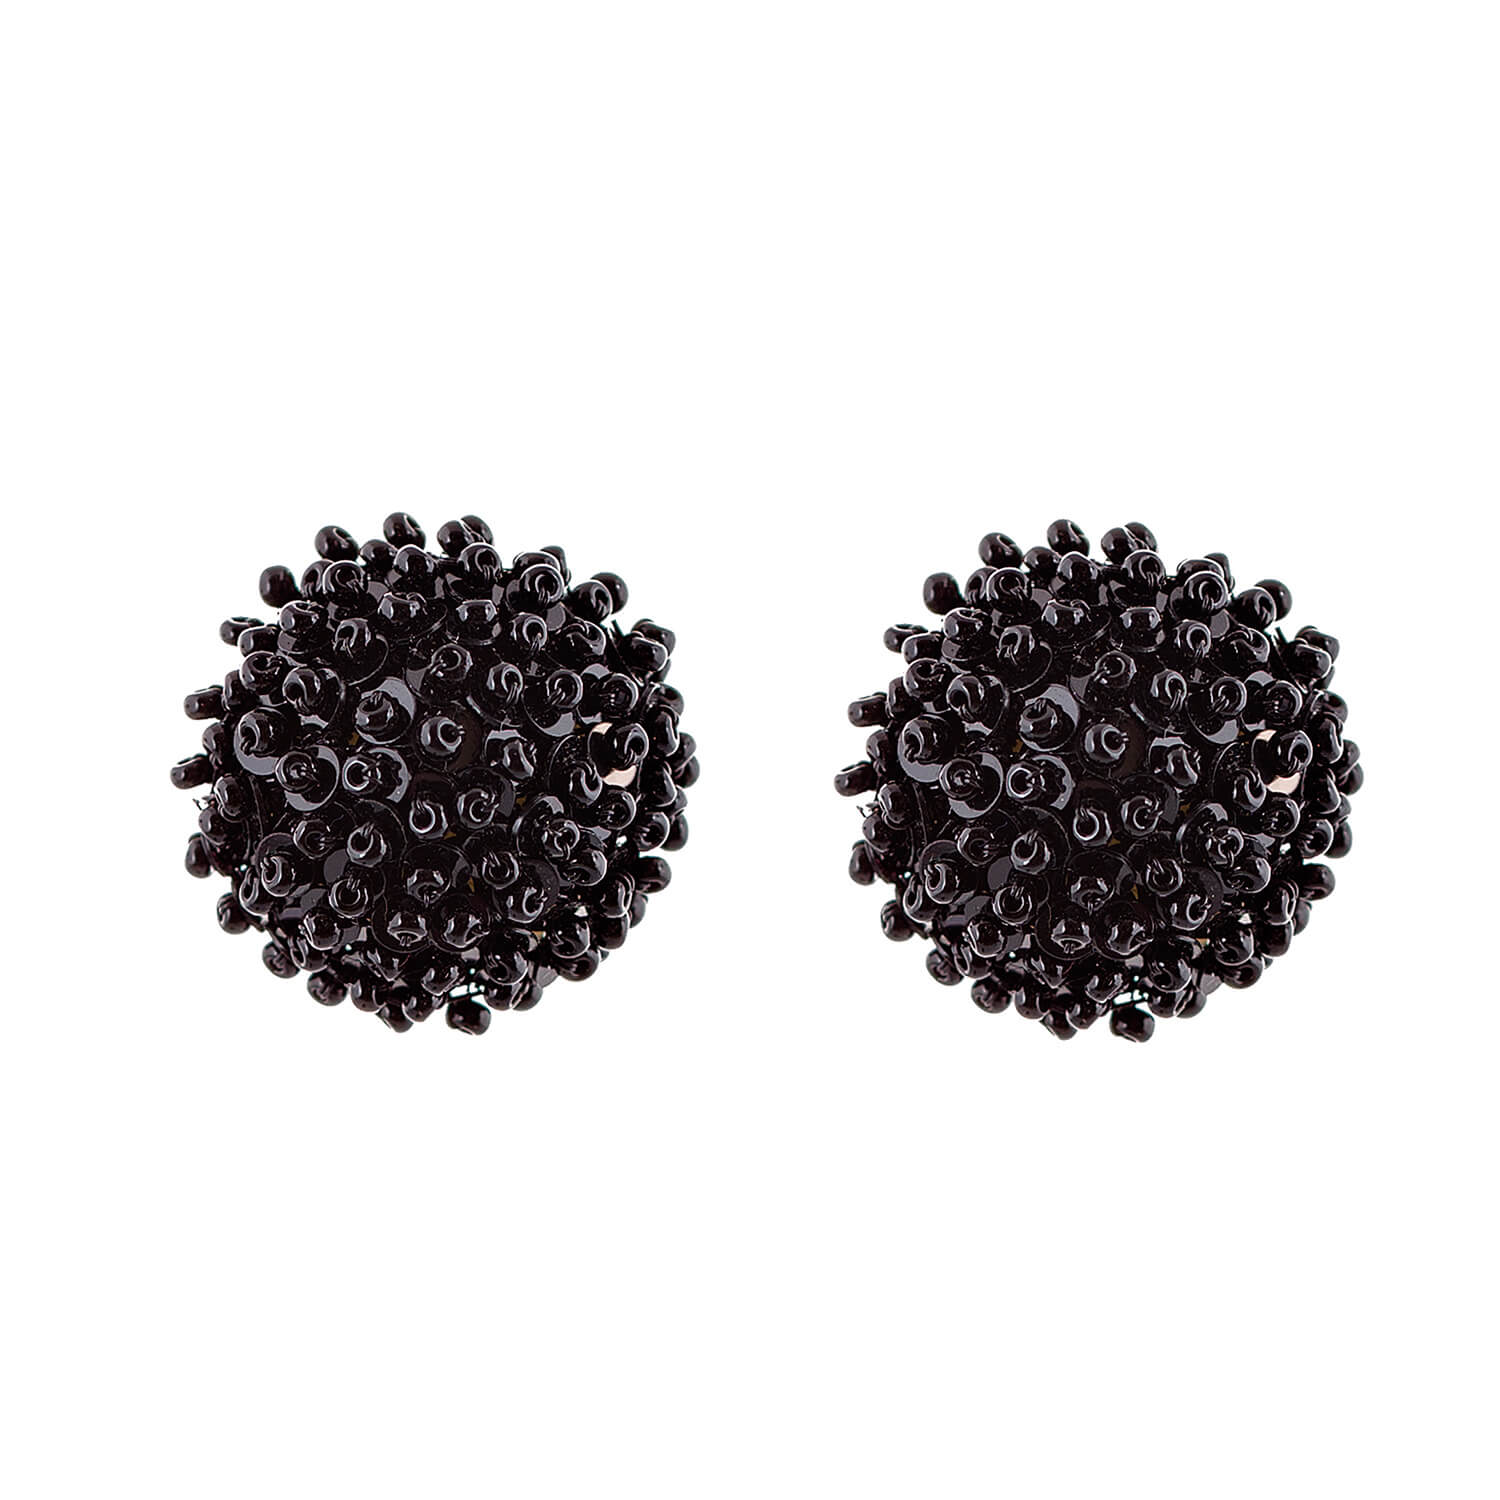 Gretchen Jet Earring- Jet Black